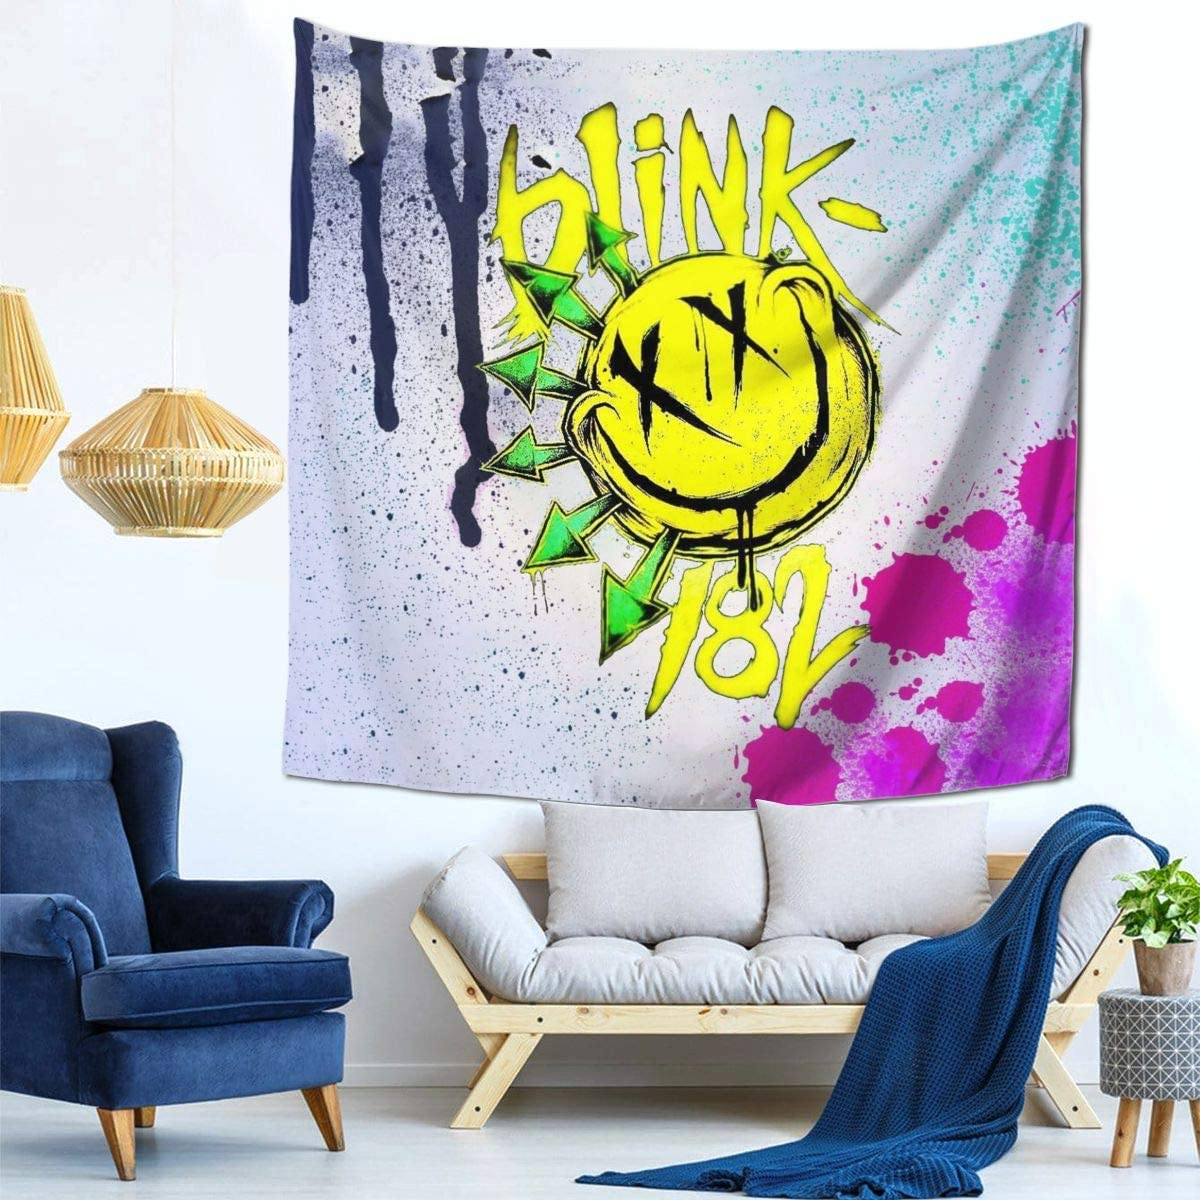 XALER Blink 182 Wall Hanging Tapestry 3D Print Mural for Home Decorations Living Room Bedroom Dorm Decor 59 X 59 Inches